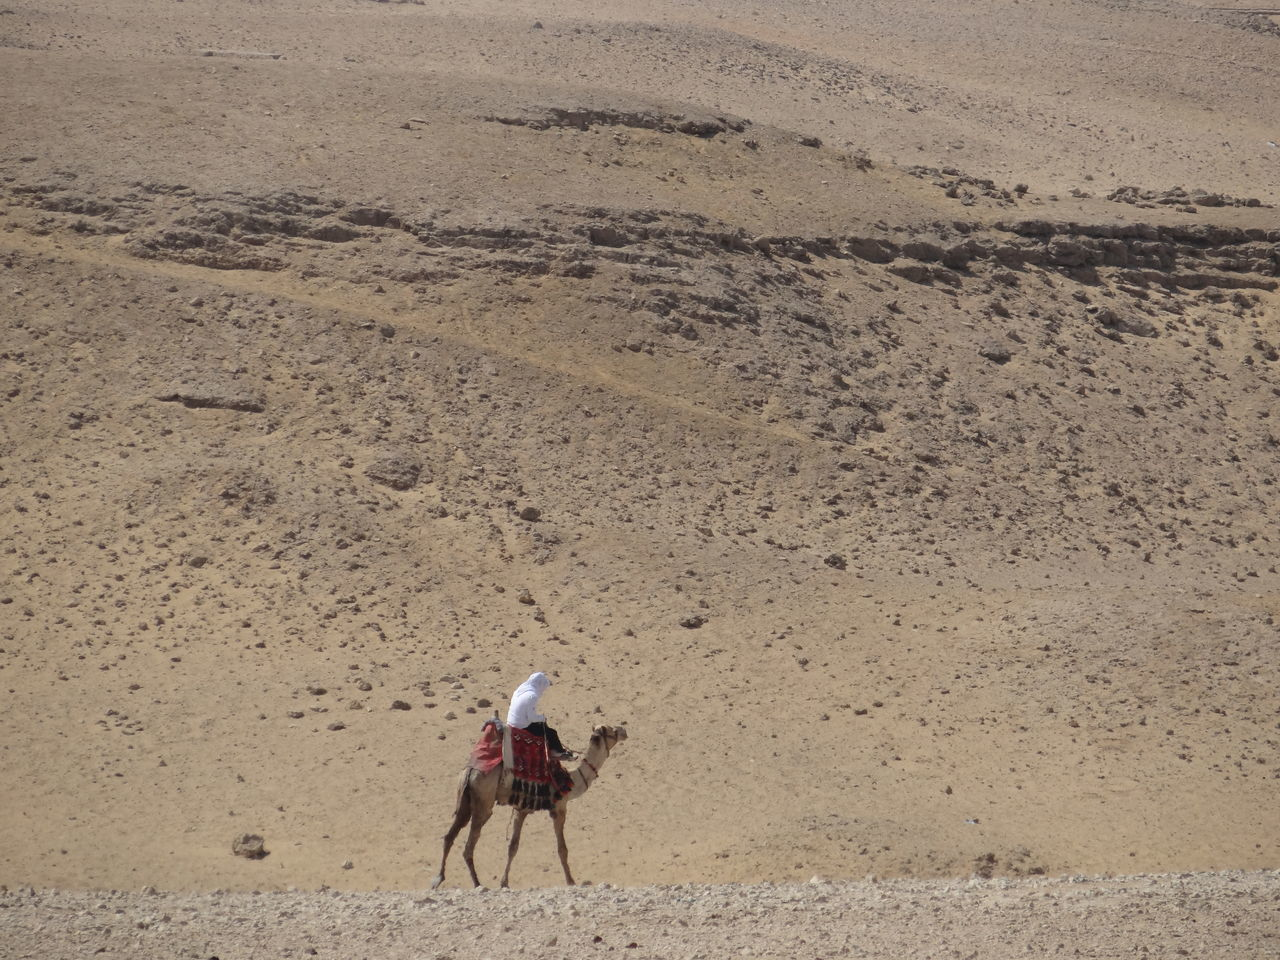 Animal Themes Arid Climate Camel Day Desert Domestic Animals Full Length Horse Landscape Livestock Mammal Nature One Animal One Person Outdoors People Pets Real People Riding Sand Working Animal